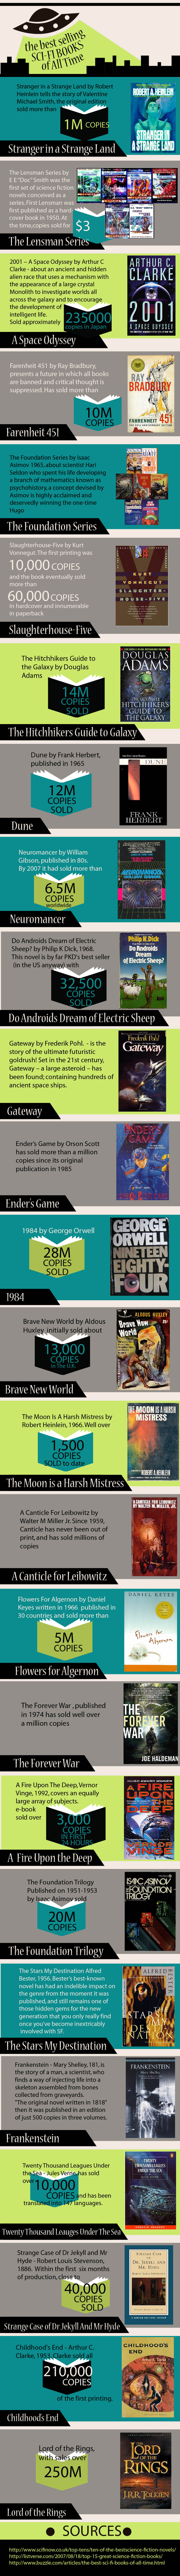 INFOGRAPHIC] The Best Selling Sci-fi Books of All Time